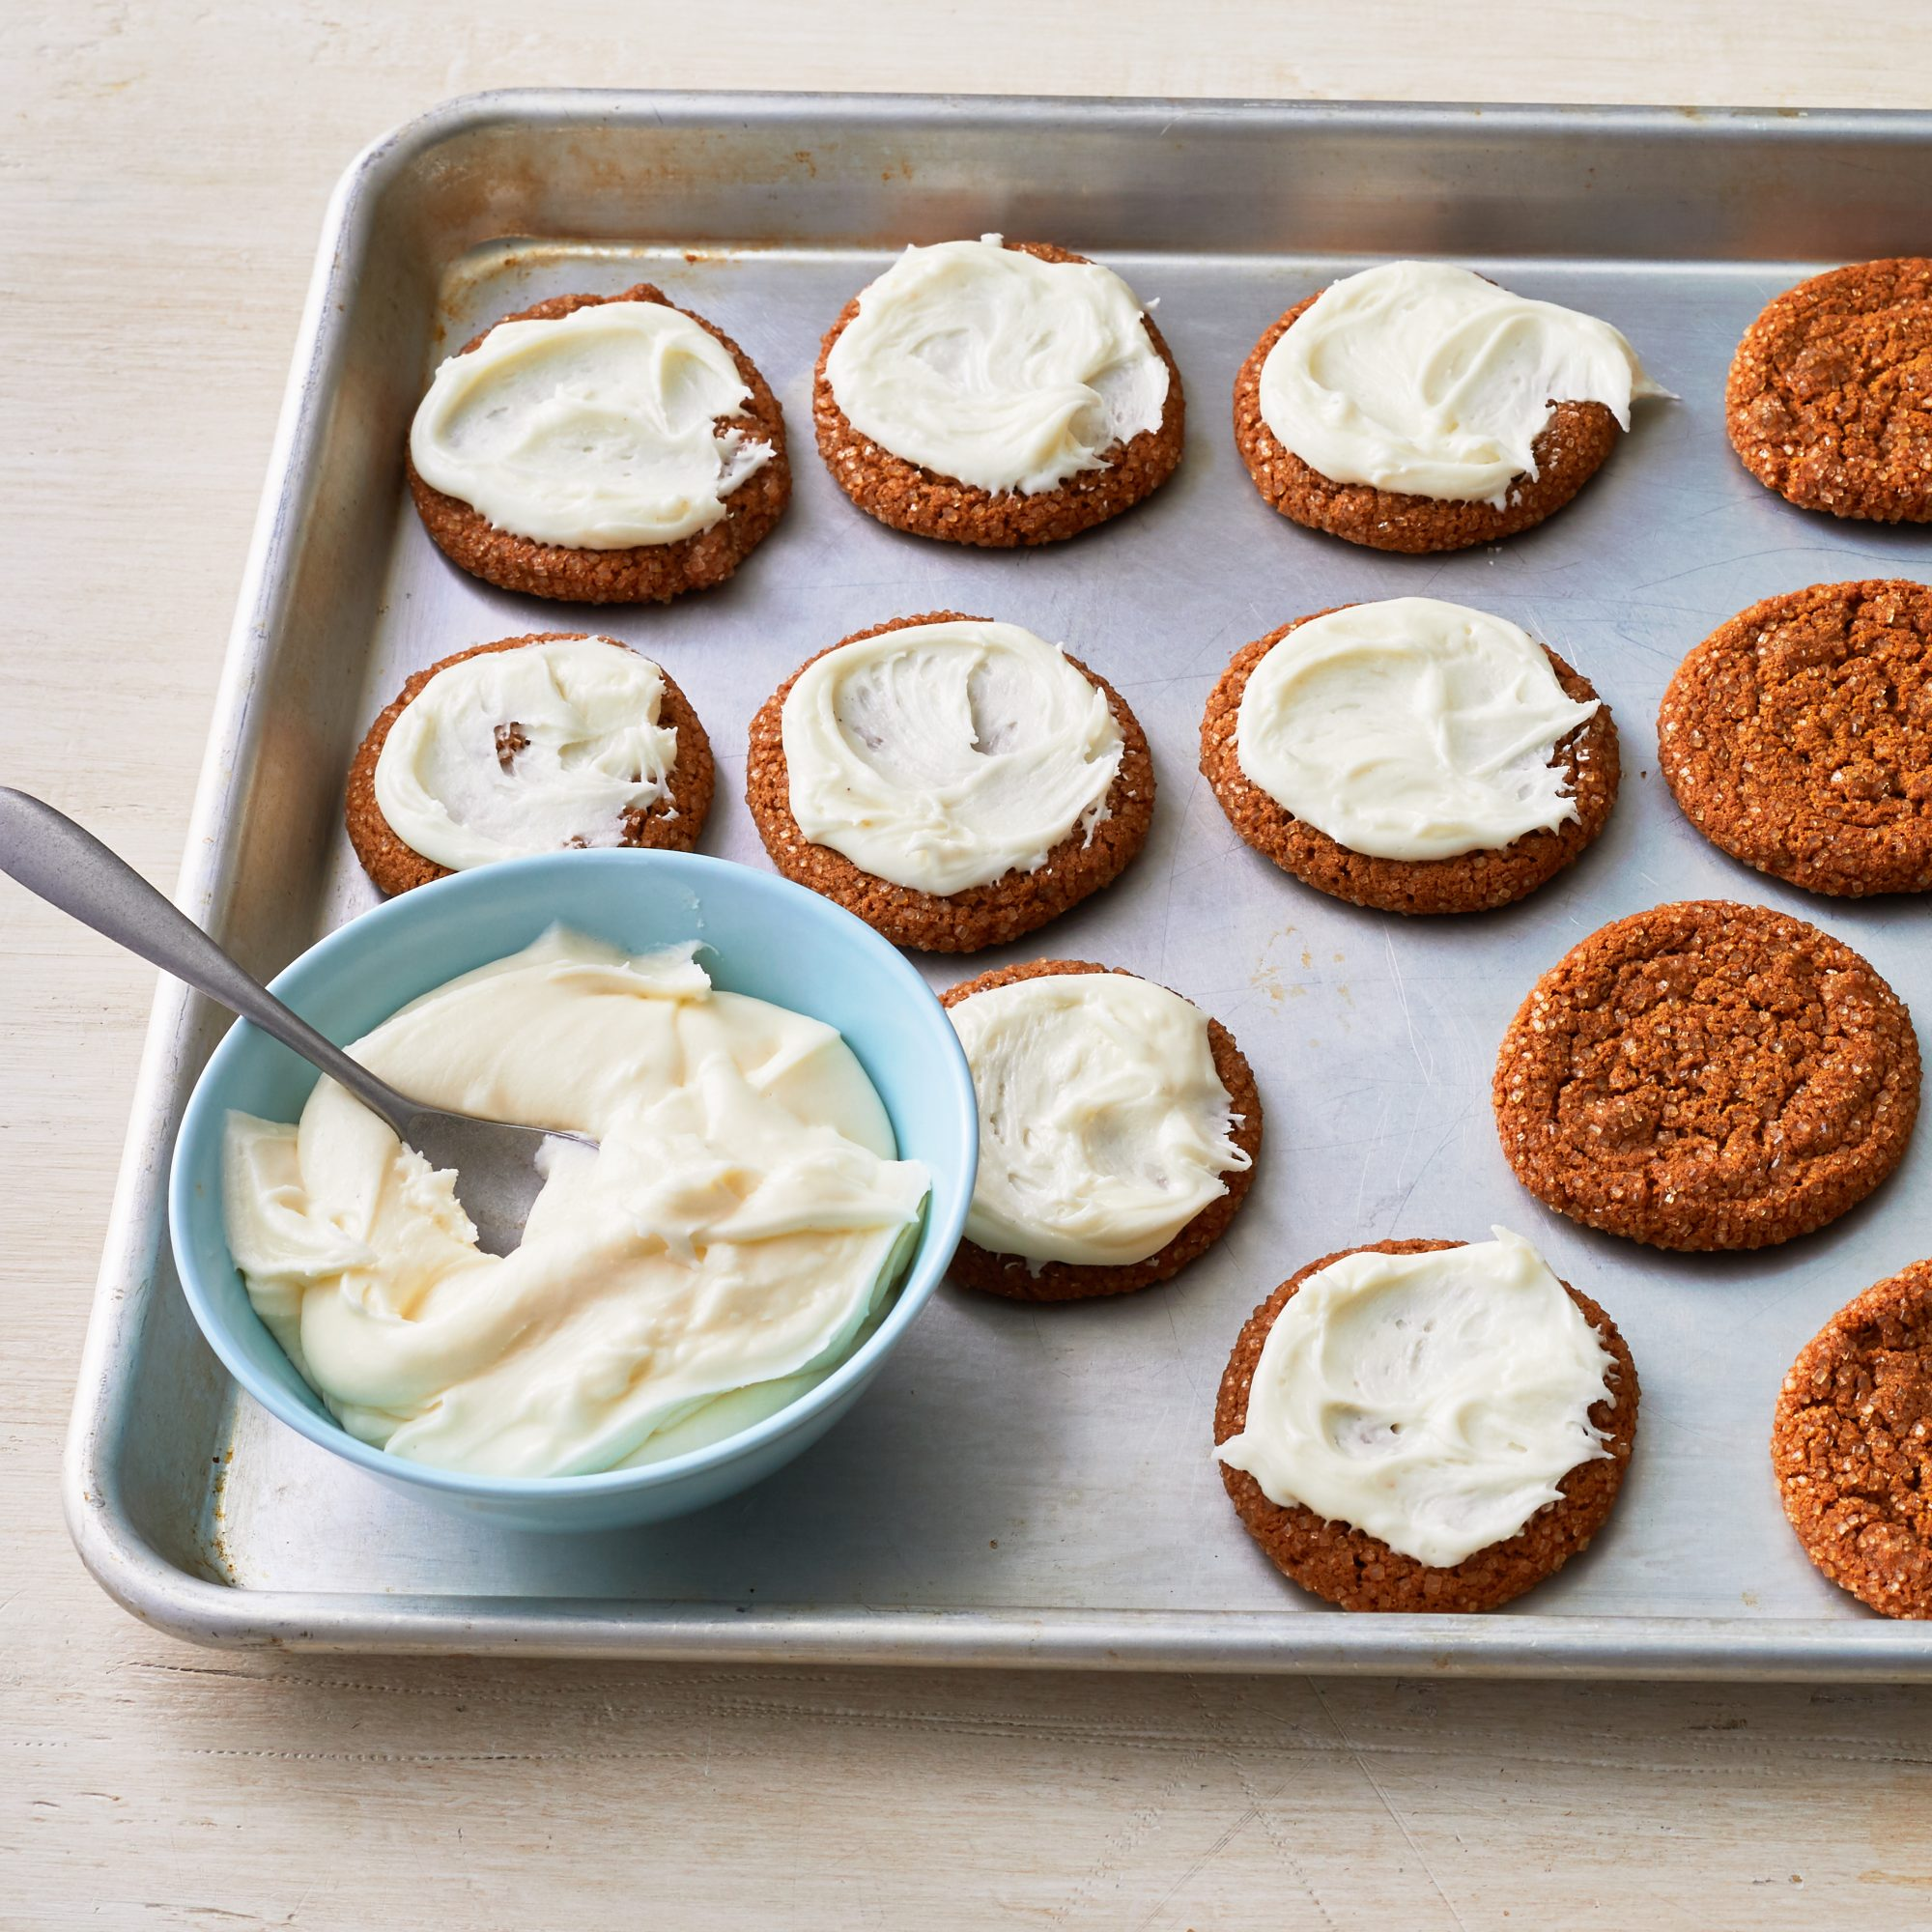 eggnog frosting on molasses cookies on baking pan